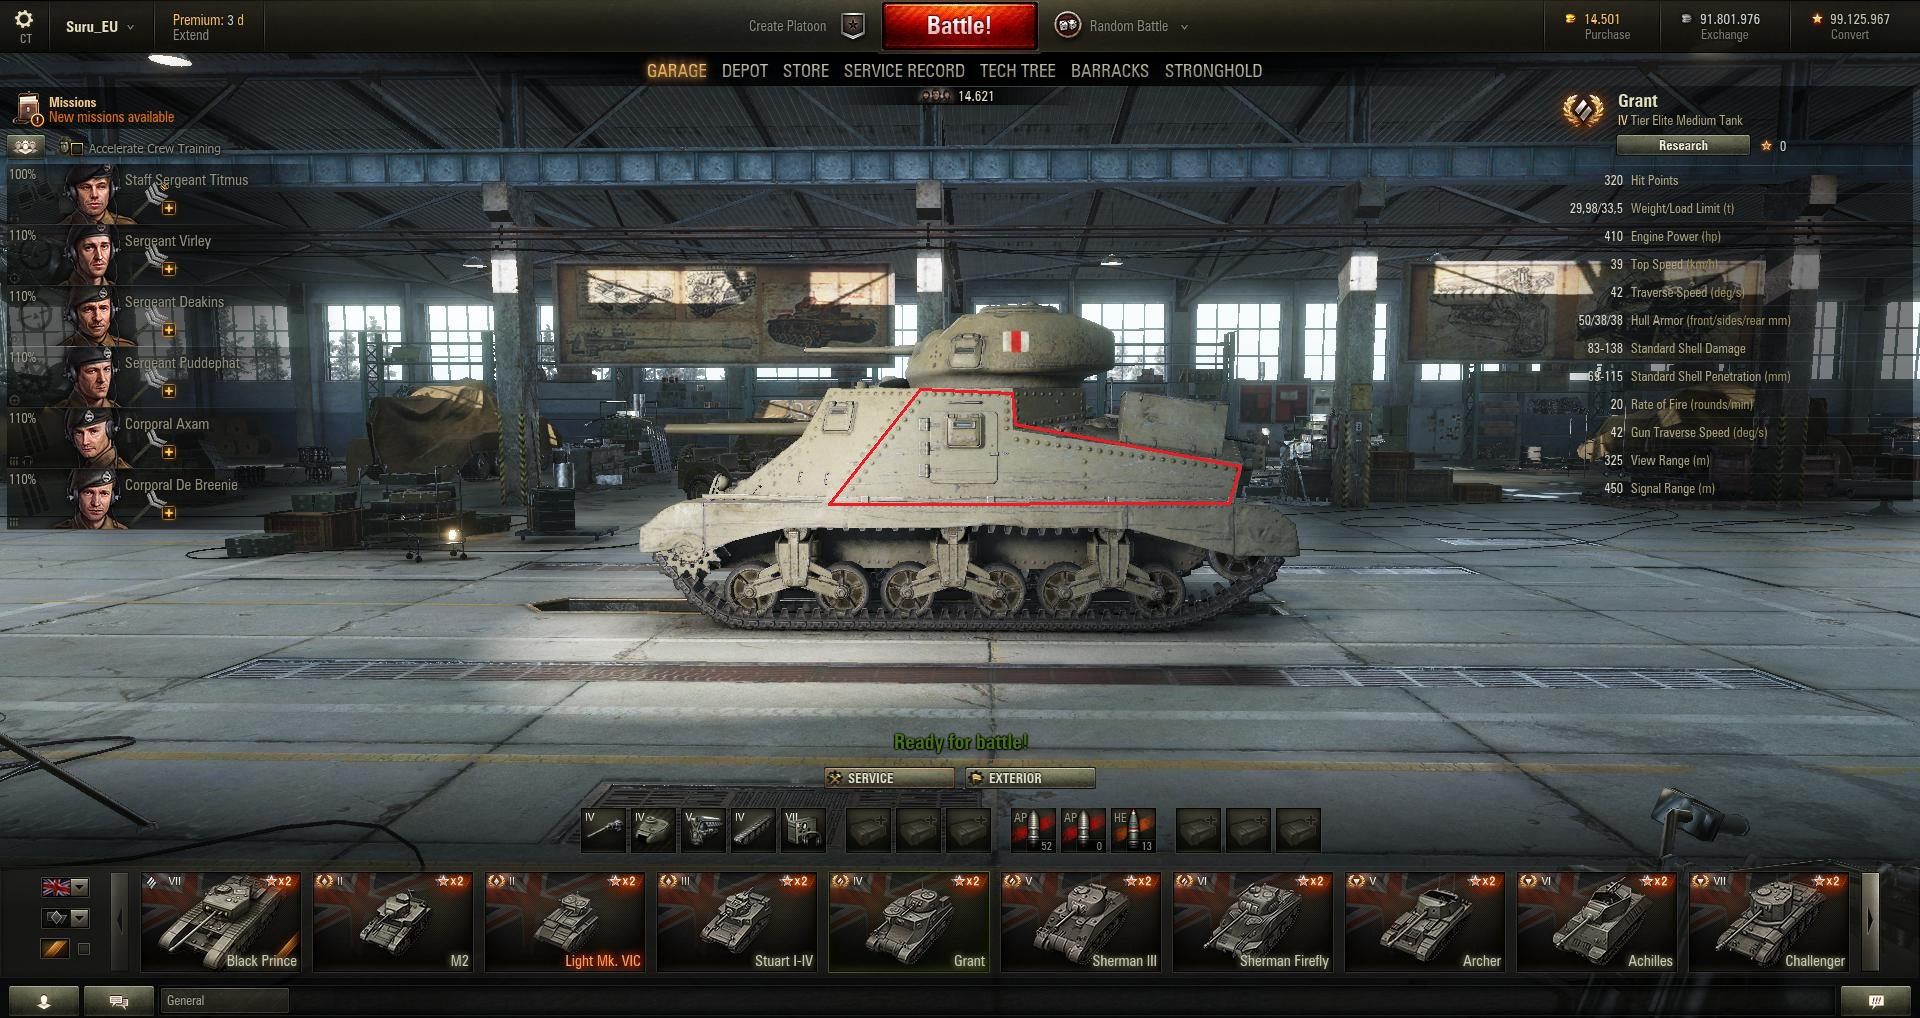 World-of-Tanks Patch-95 Grant-Seite-buffed